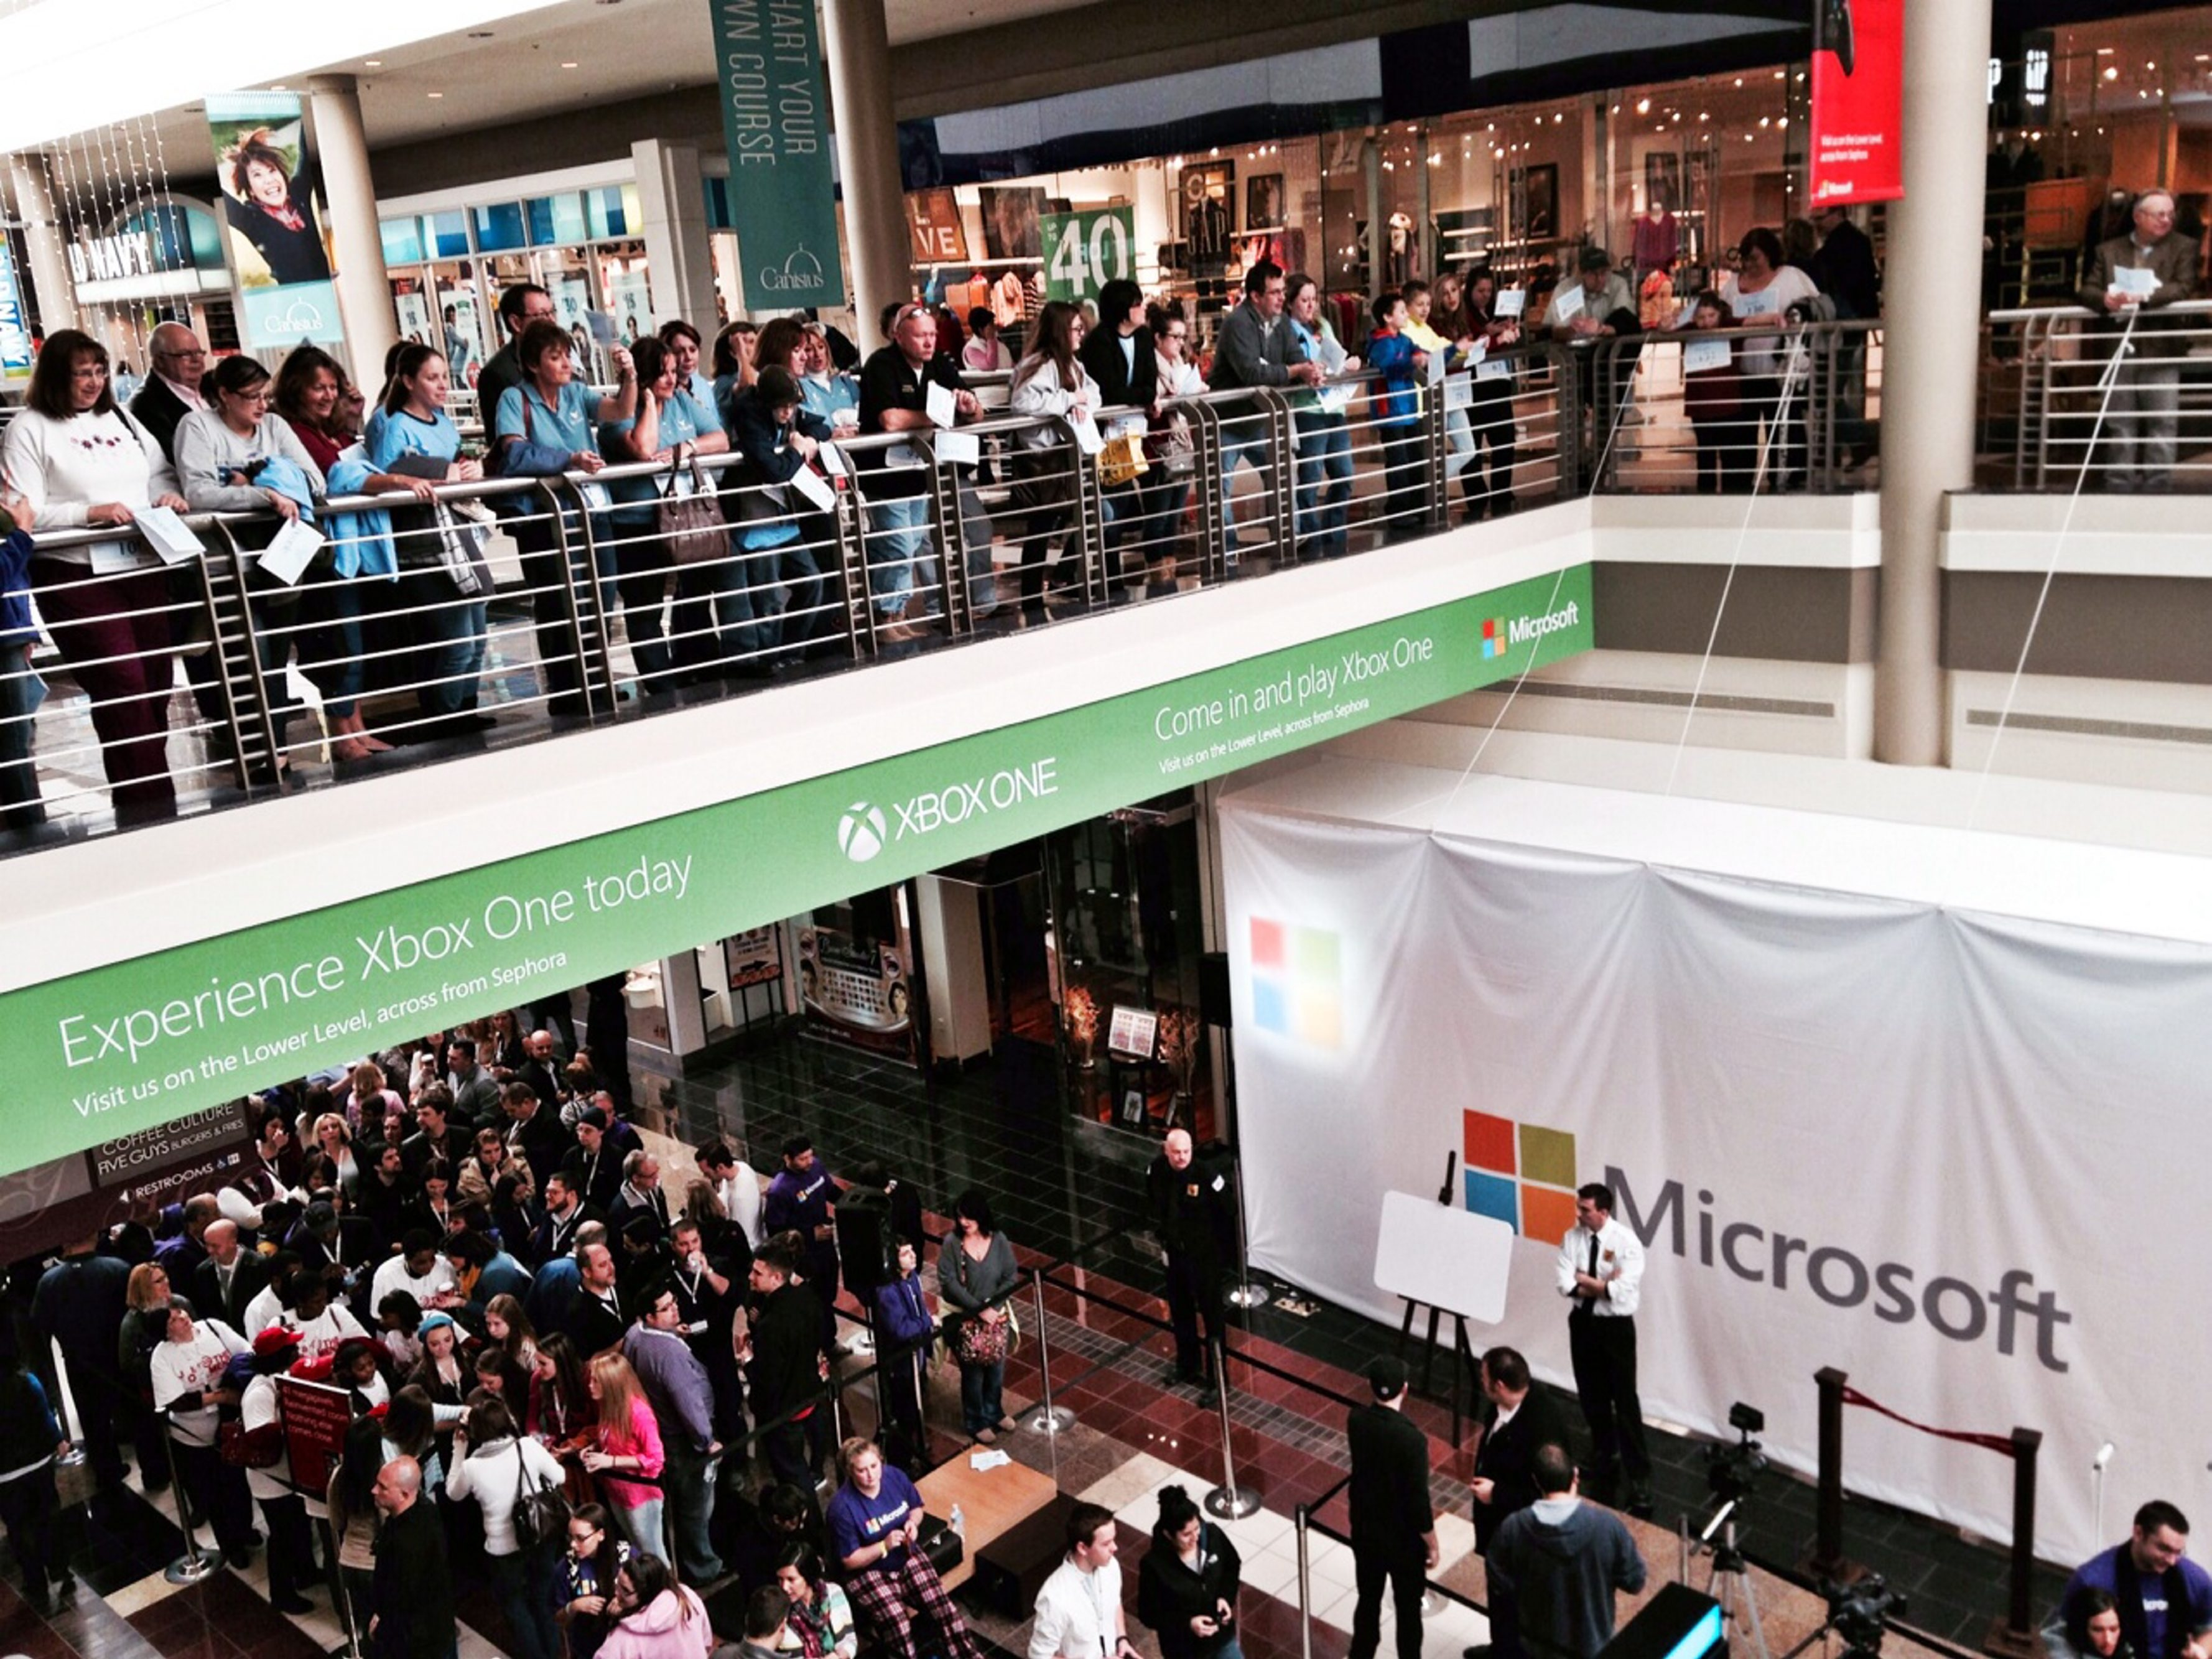 Crowds lined up at the Walden Galleria on Saturday morning for the opening of the Microsoft store at the mall and a chance to get tickets to a Kelly Clarkson concert.